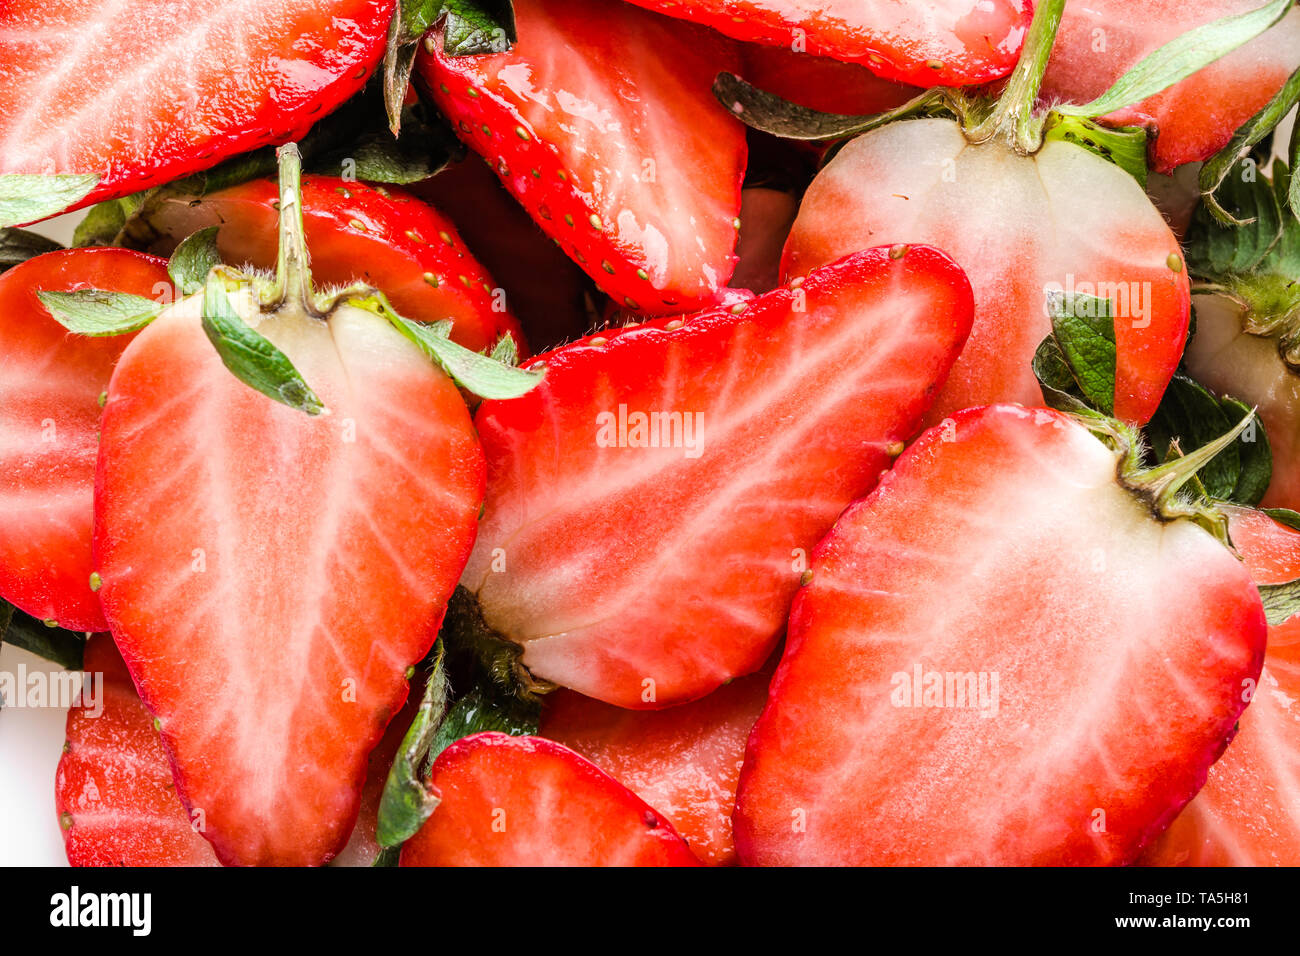 Fresh strawberries background, red texture of strawberry slices. - Stock Image